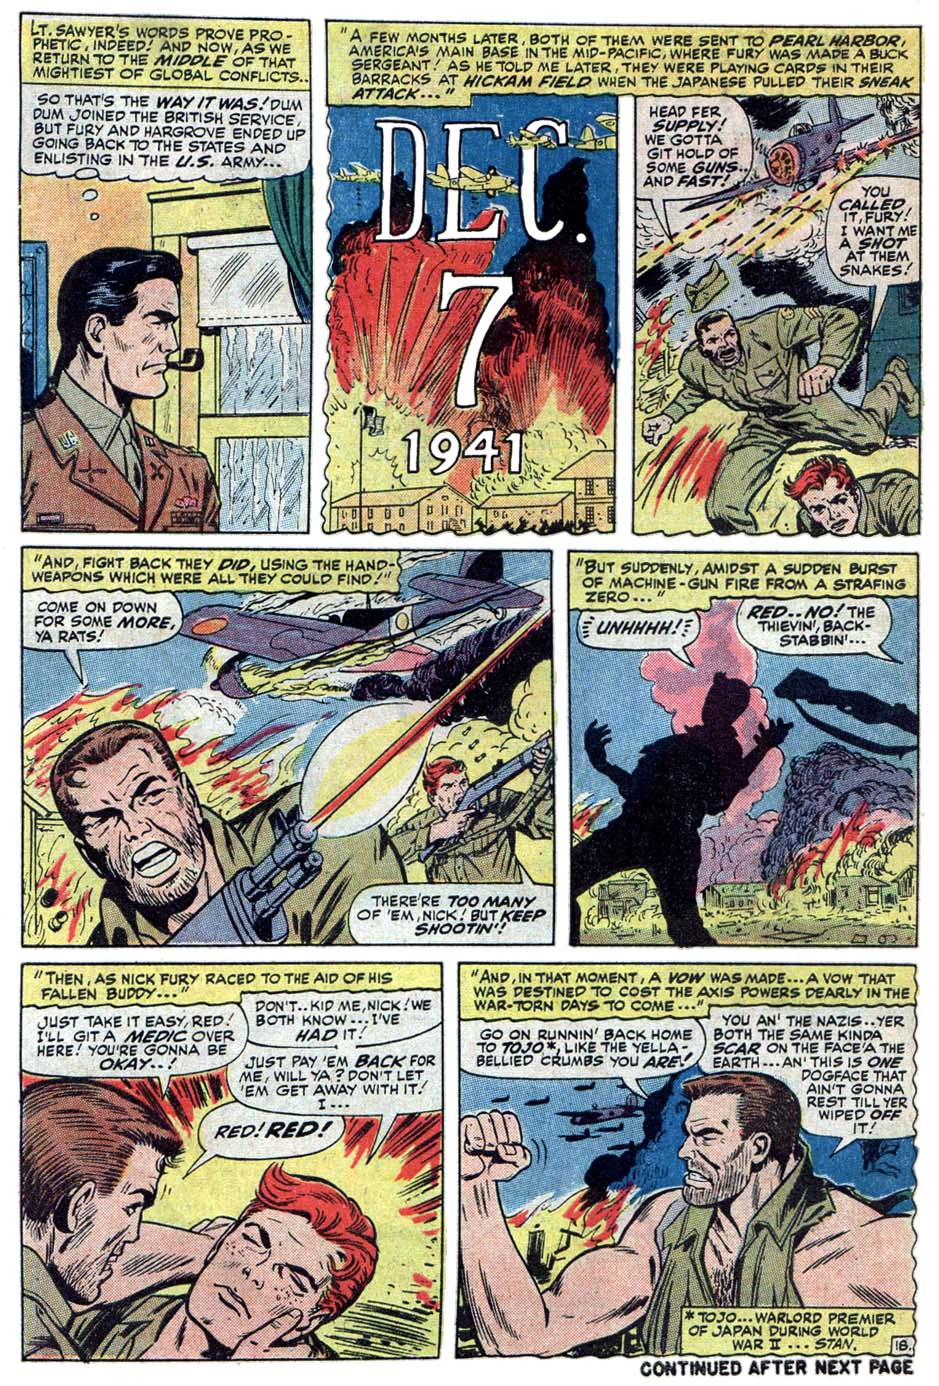 Read online Sgt. Fury comic -  Issue #101 - 30